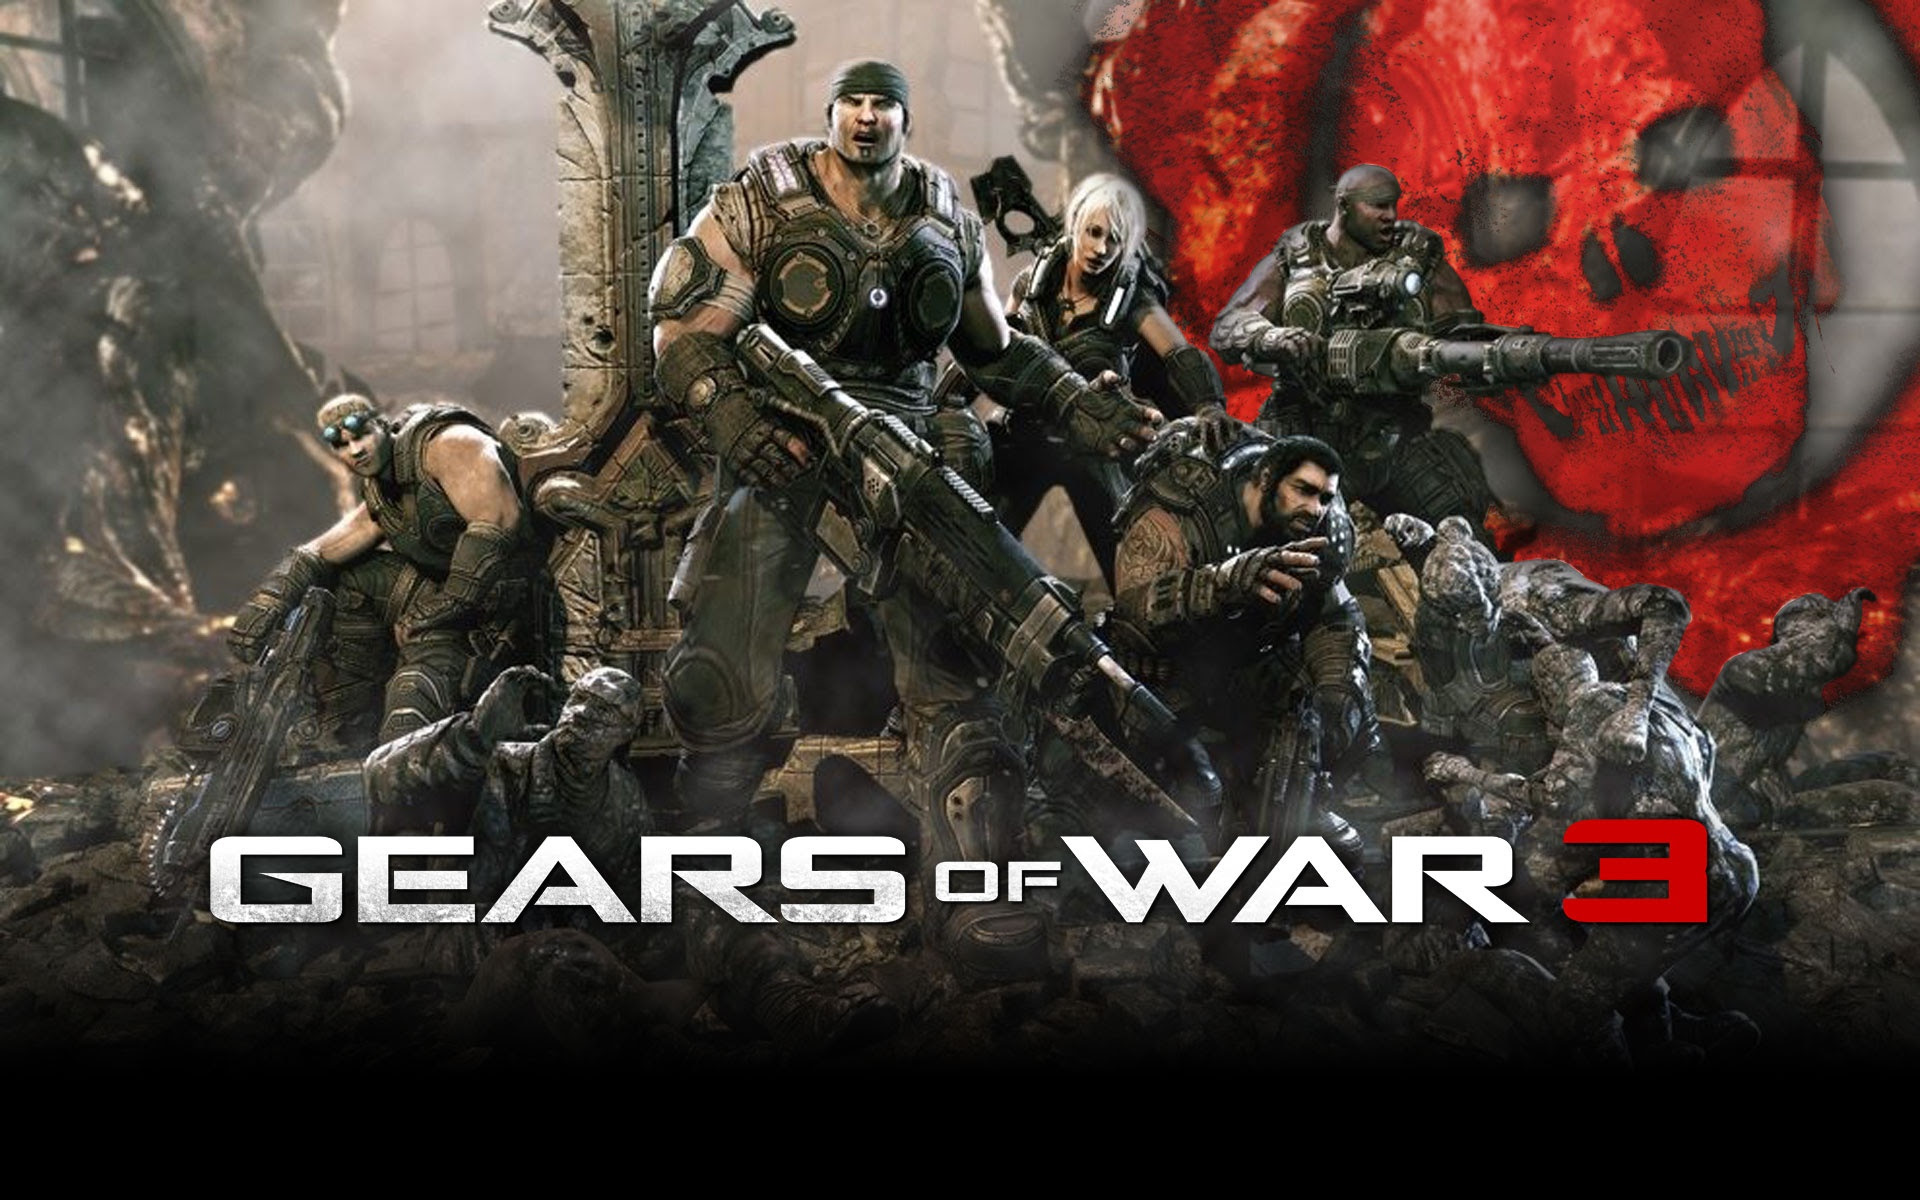 Gears Of War 3 Wallpaper 1920x1200 5097